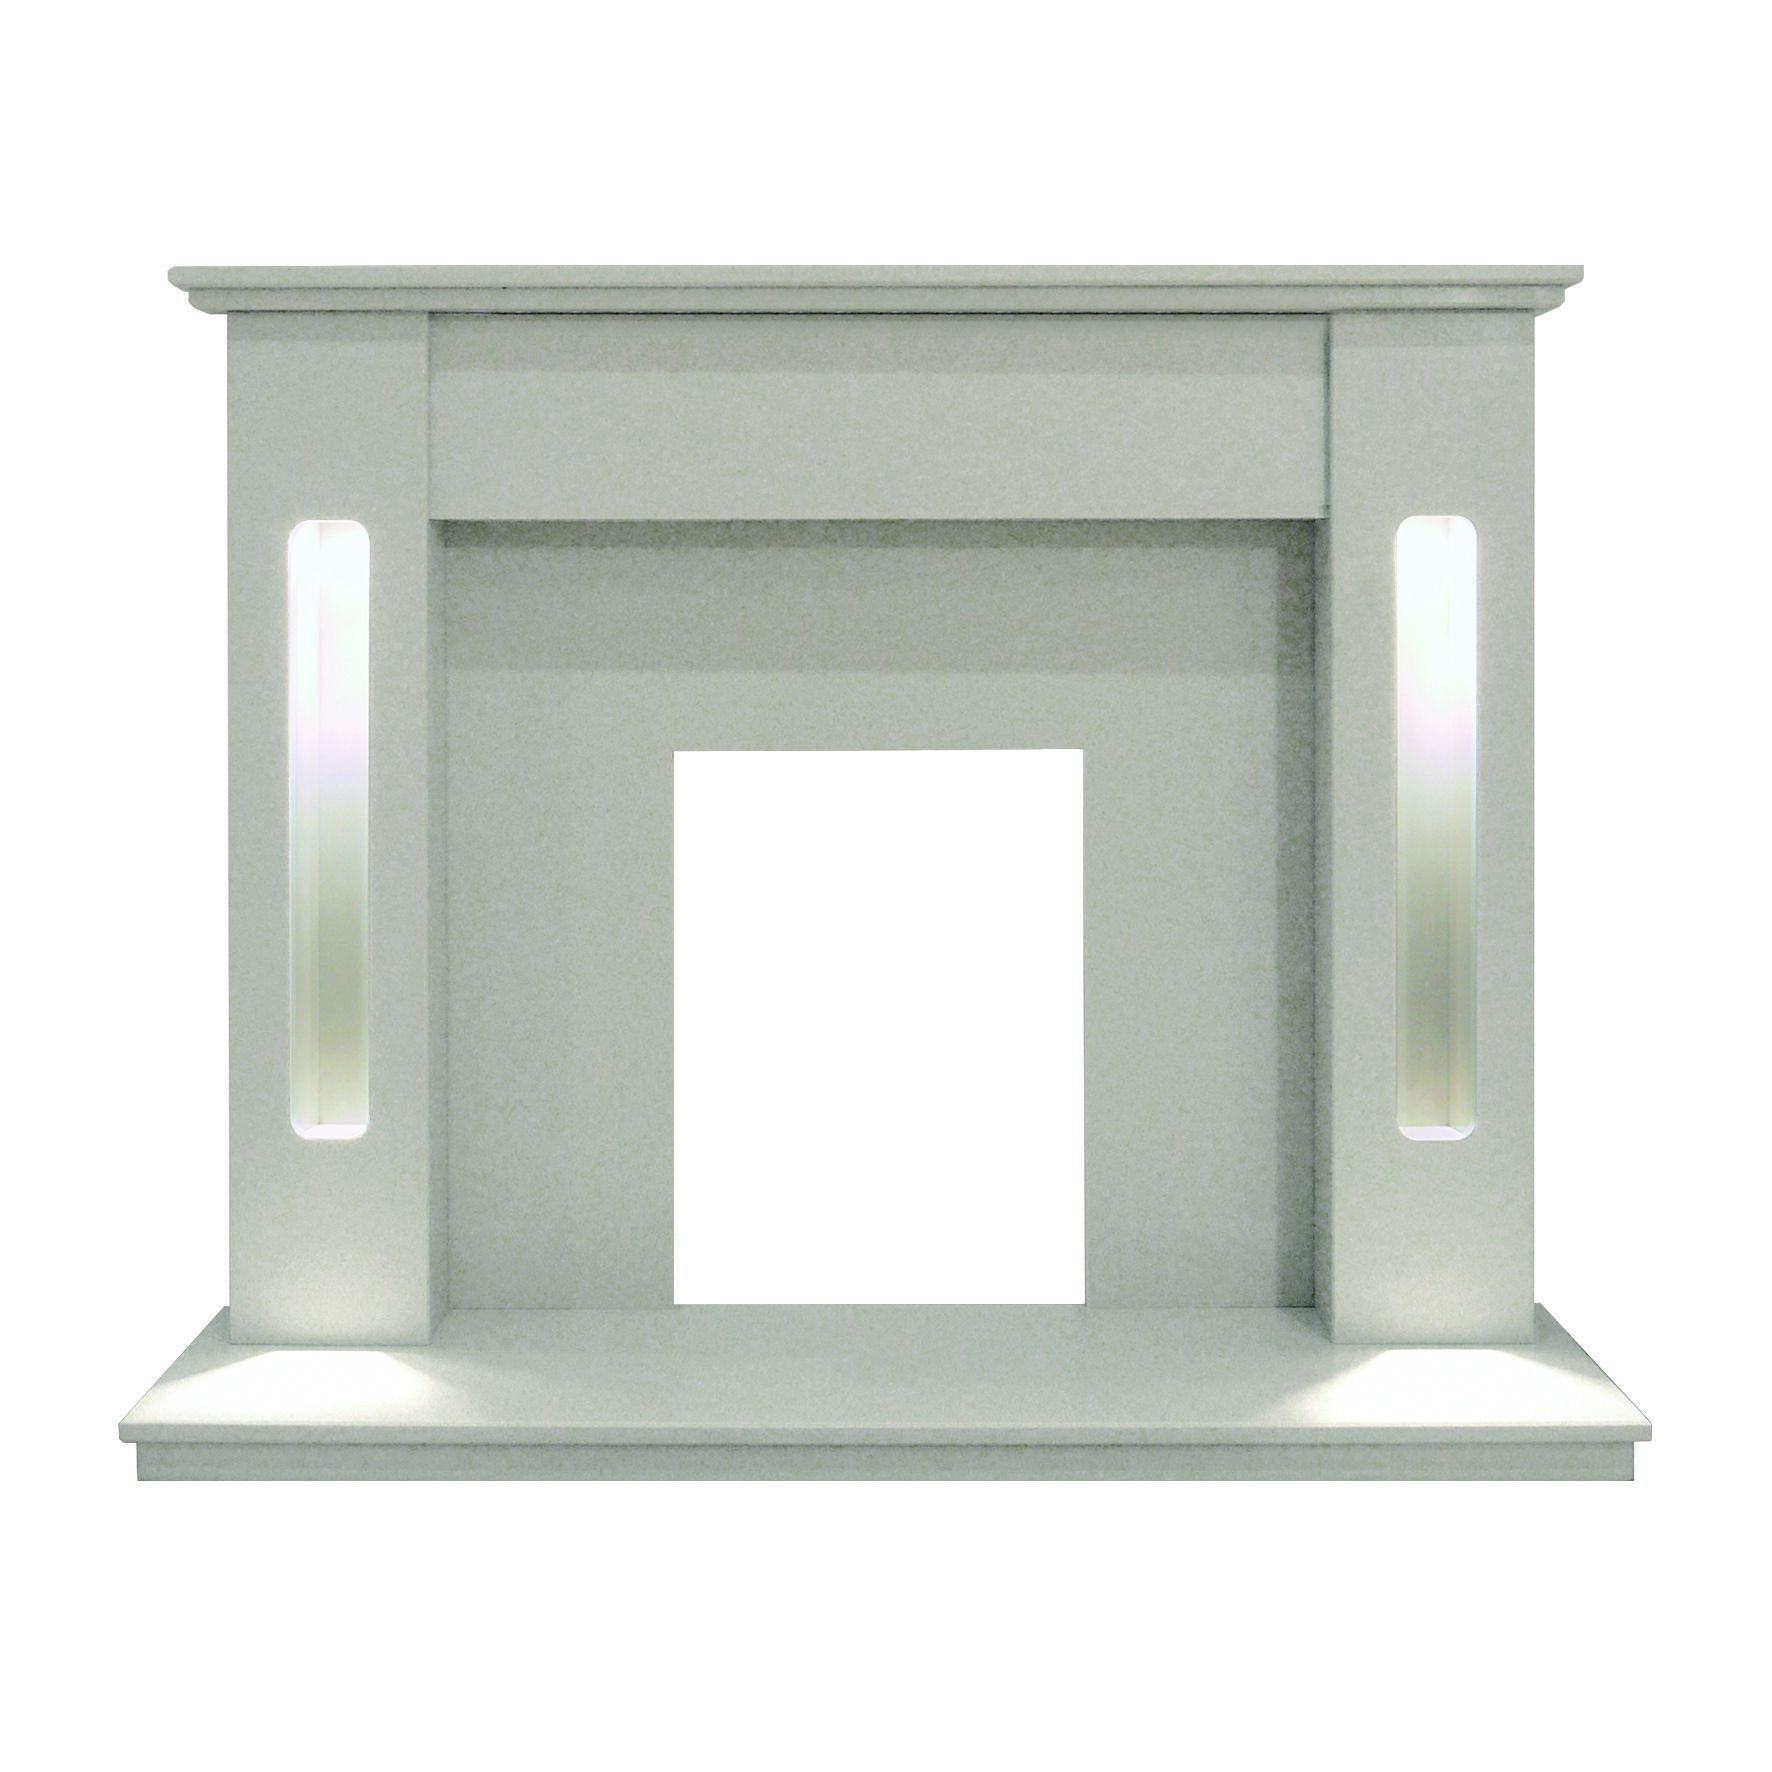 New York Beige Stone Micro Marble Fire Surround